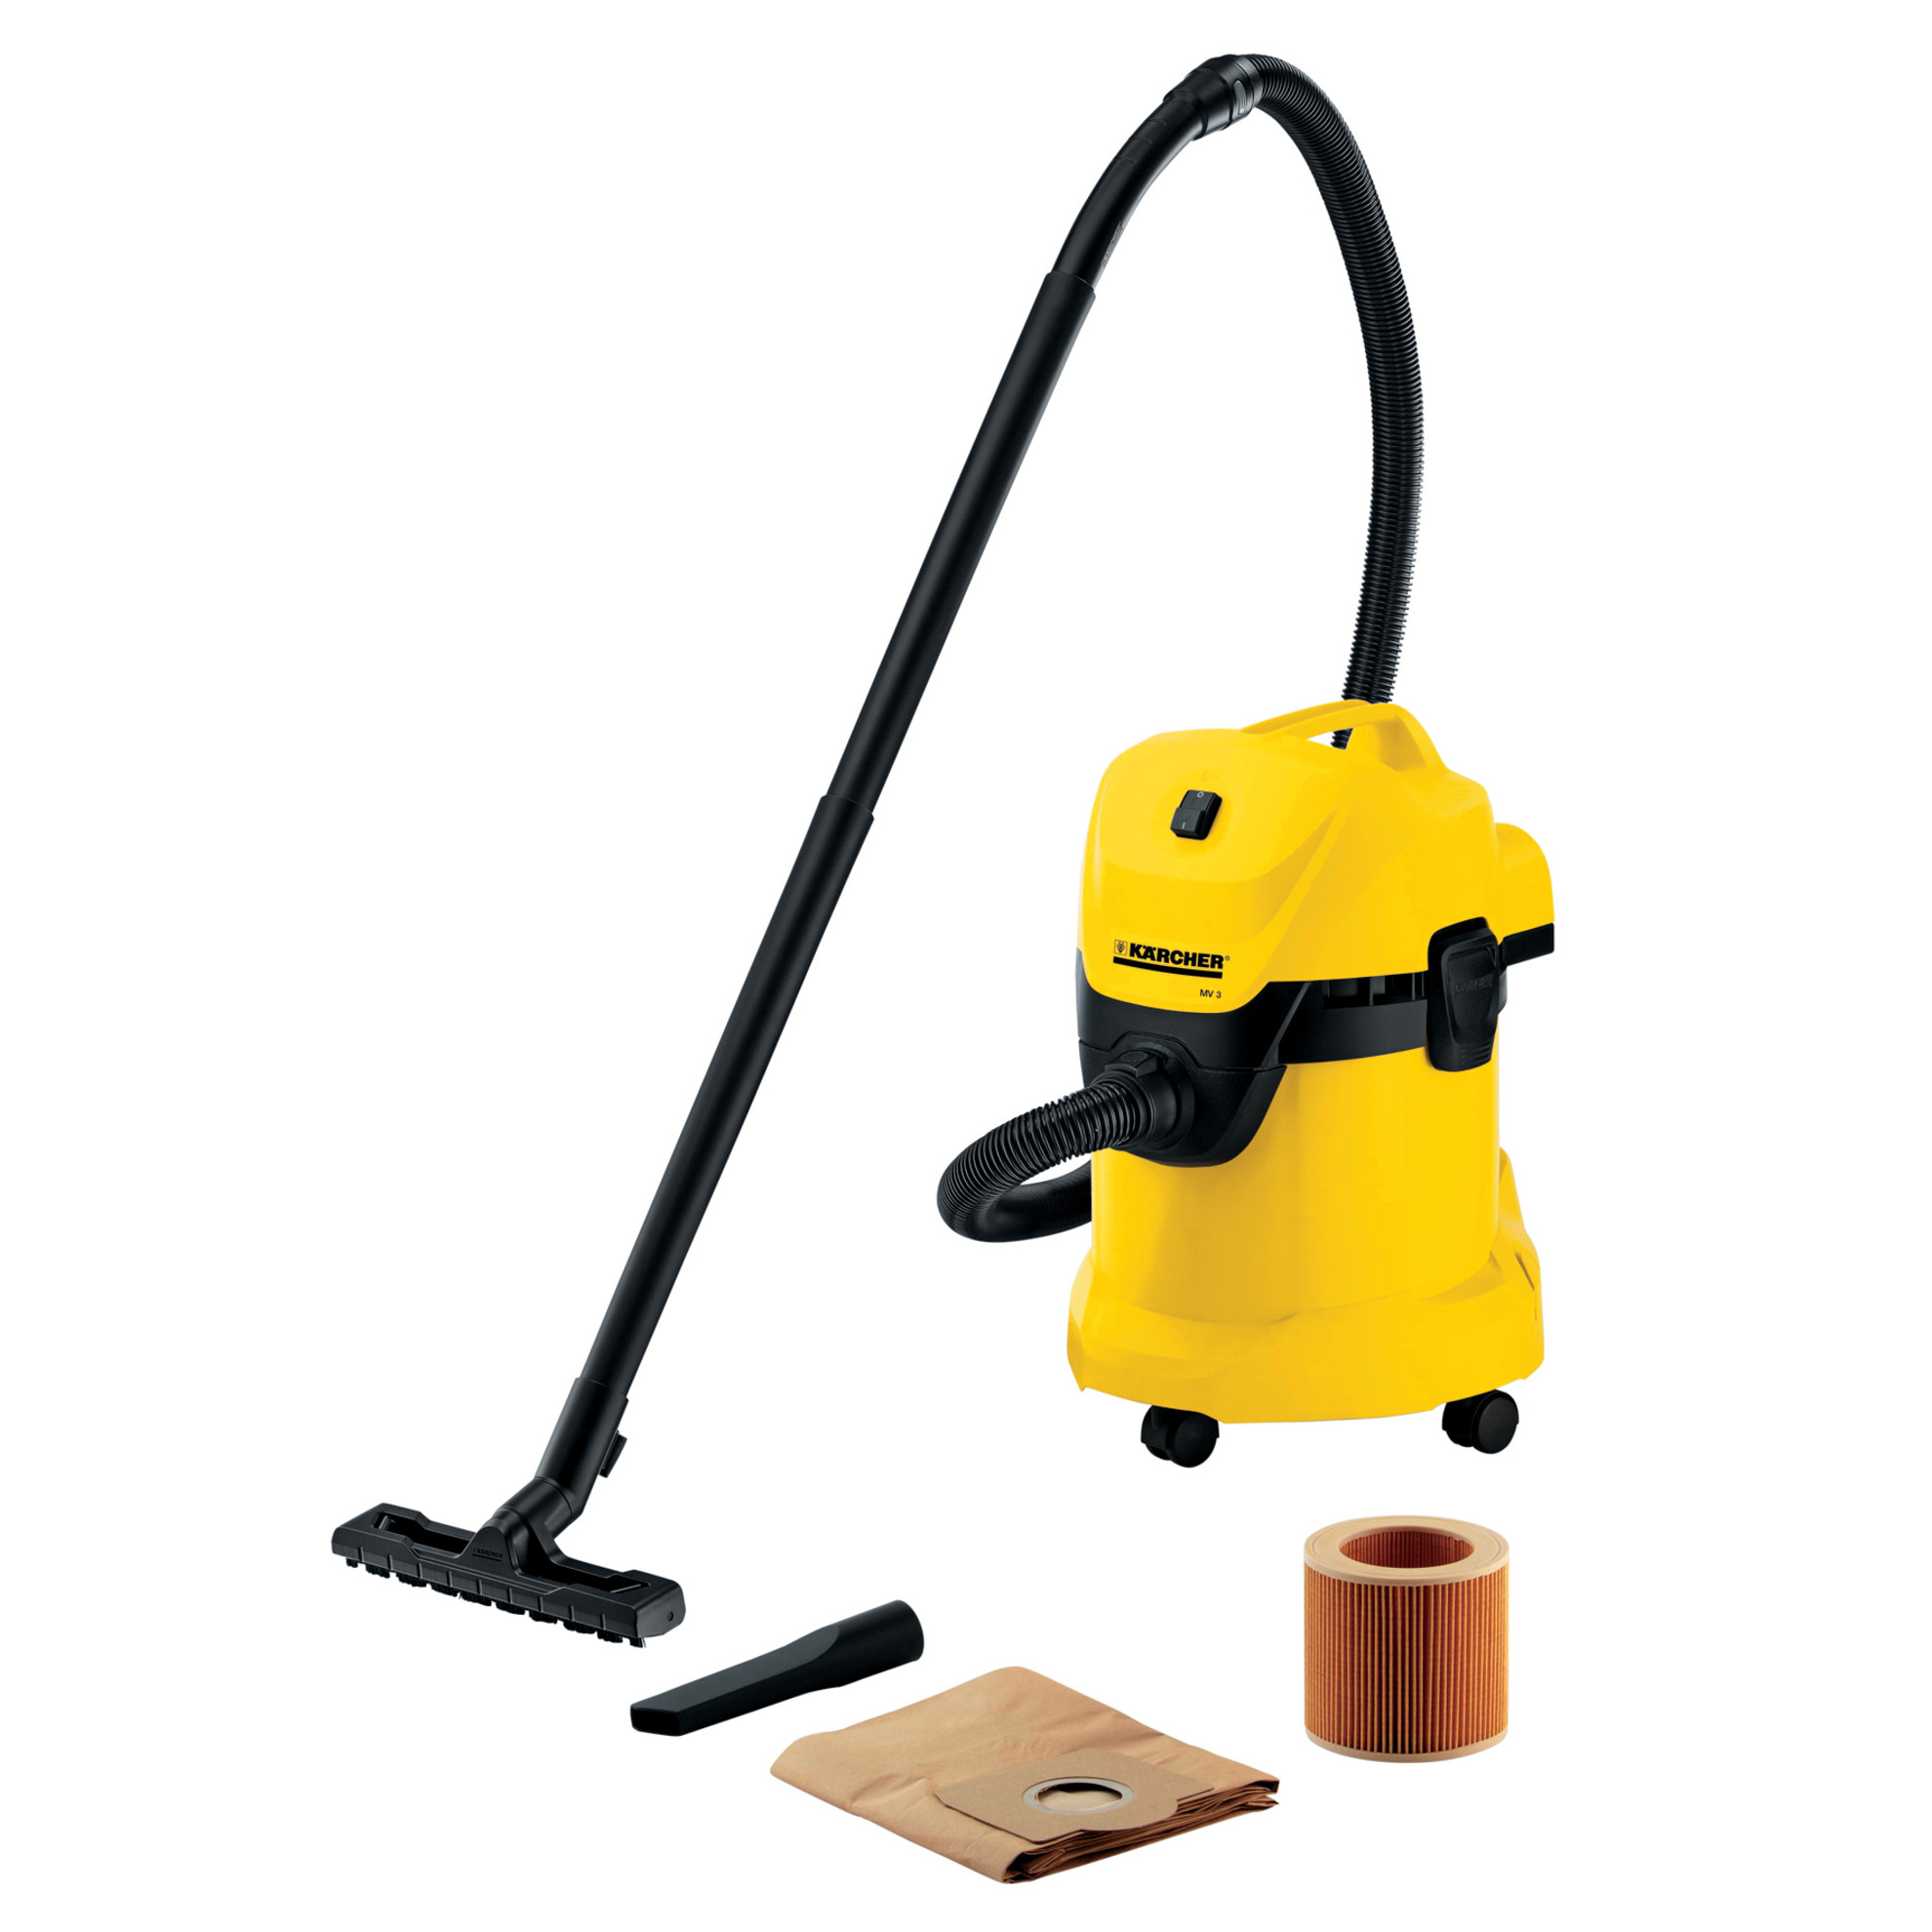 Image result for karcher wet and dry vacuum cleaner